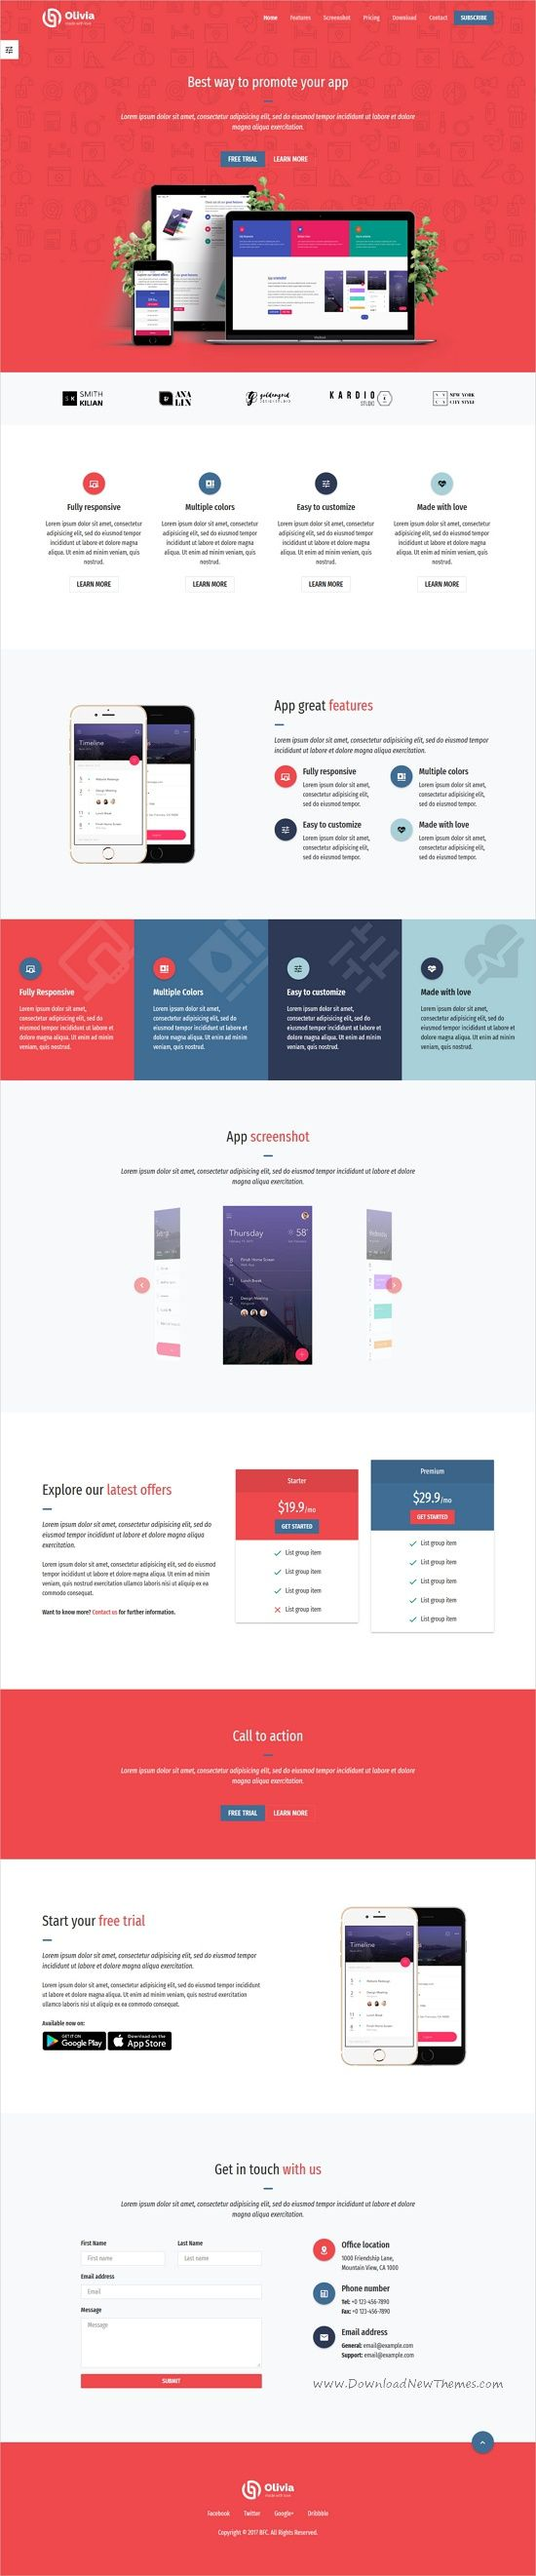 Olivia is clean and modern design 5in1 #responsive HTML #bootstrap template for app #landingpage professional website download now➩ https://themeforest.net/item/olivia-app-landing-page-template/19869917?ref=Datasata